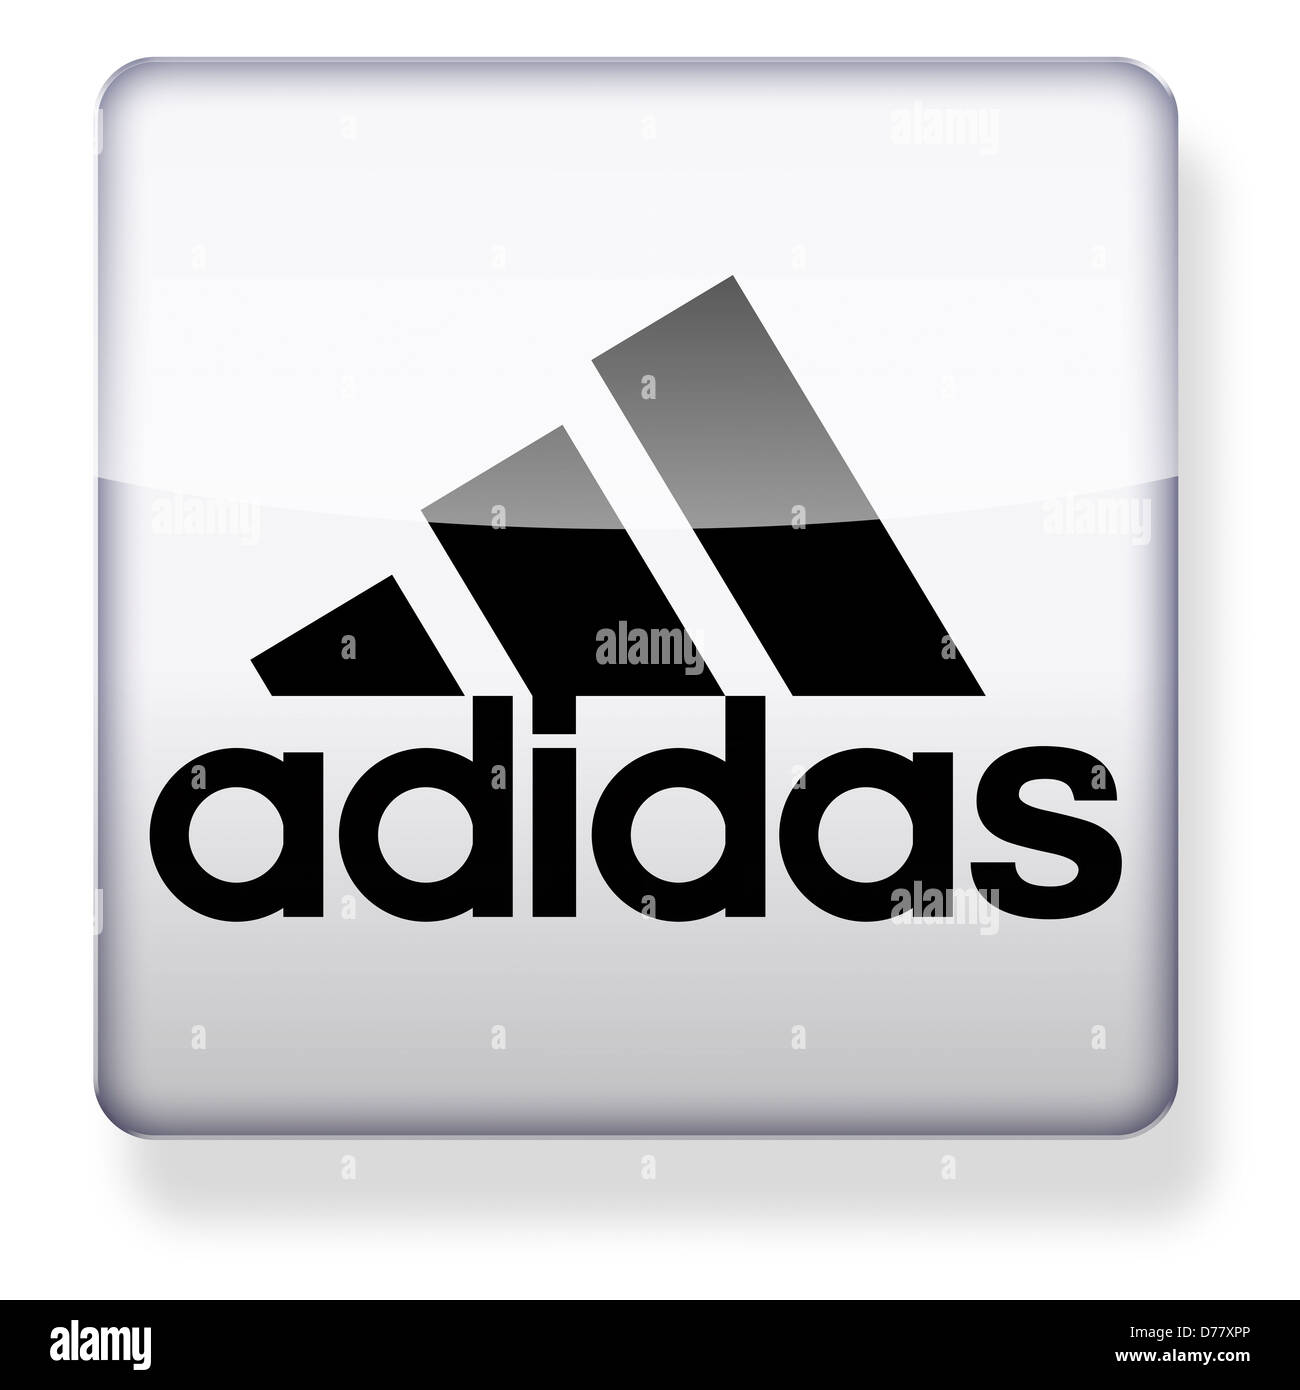 Adidas logo as an app icon. Clipping path included. - Stock Image